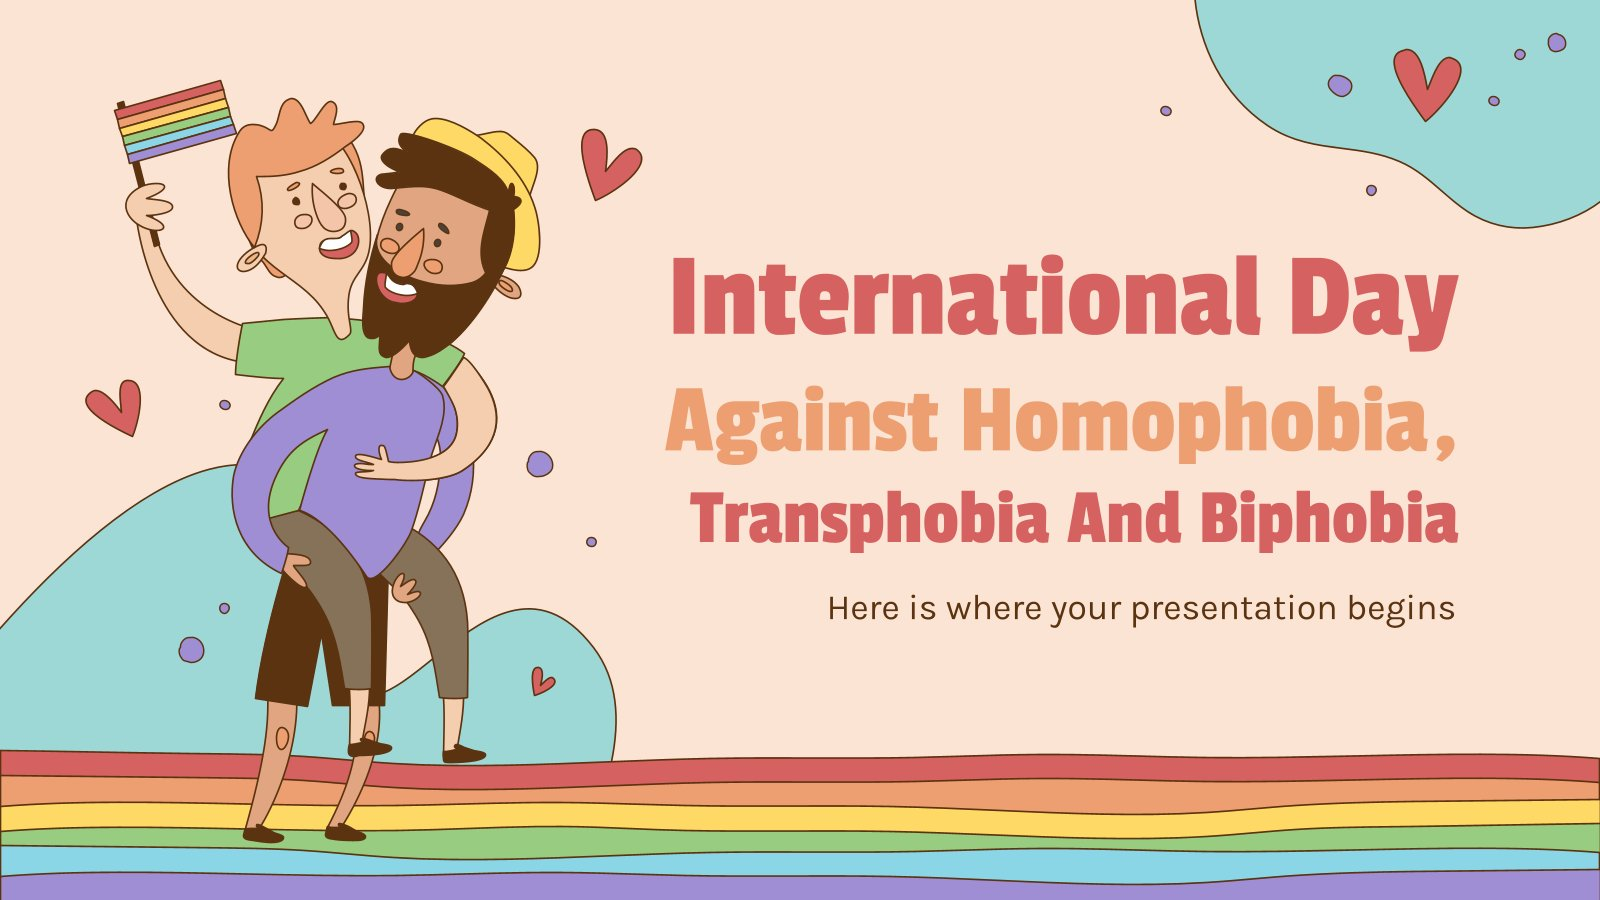 International Day against Homophobia, Transphobia and Biphobia presentation template